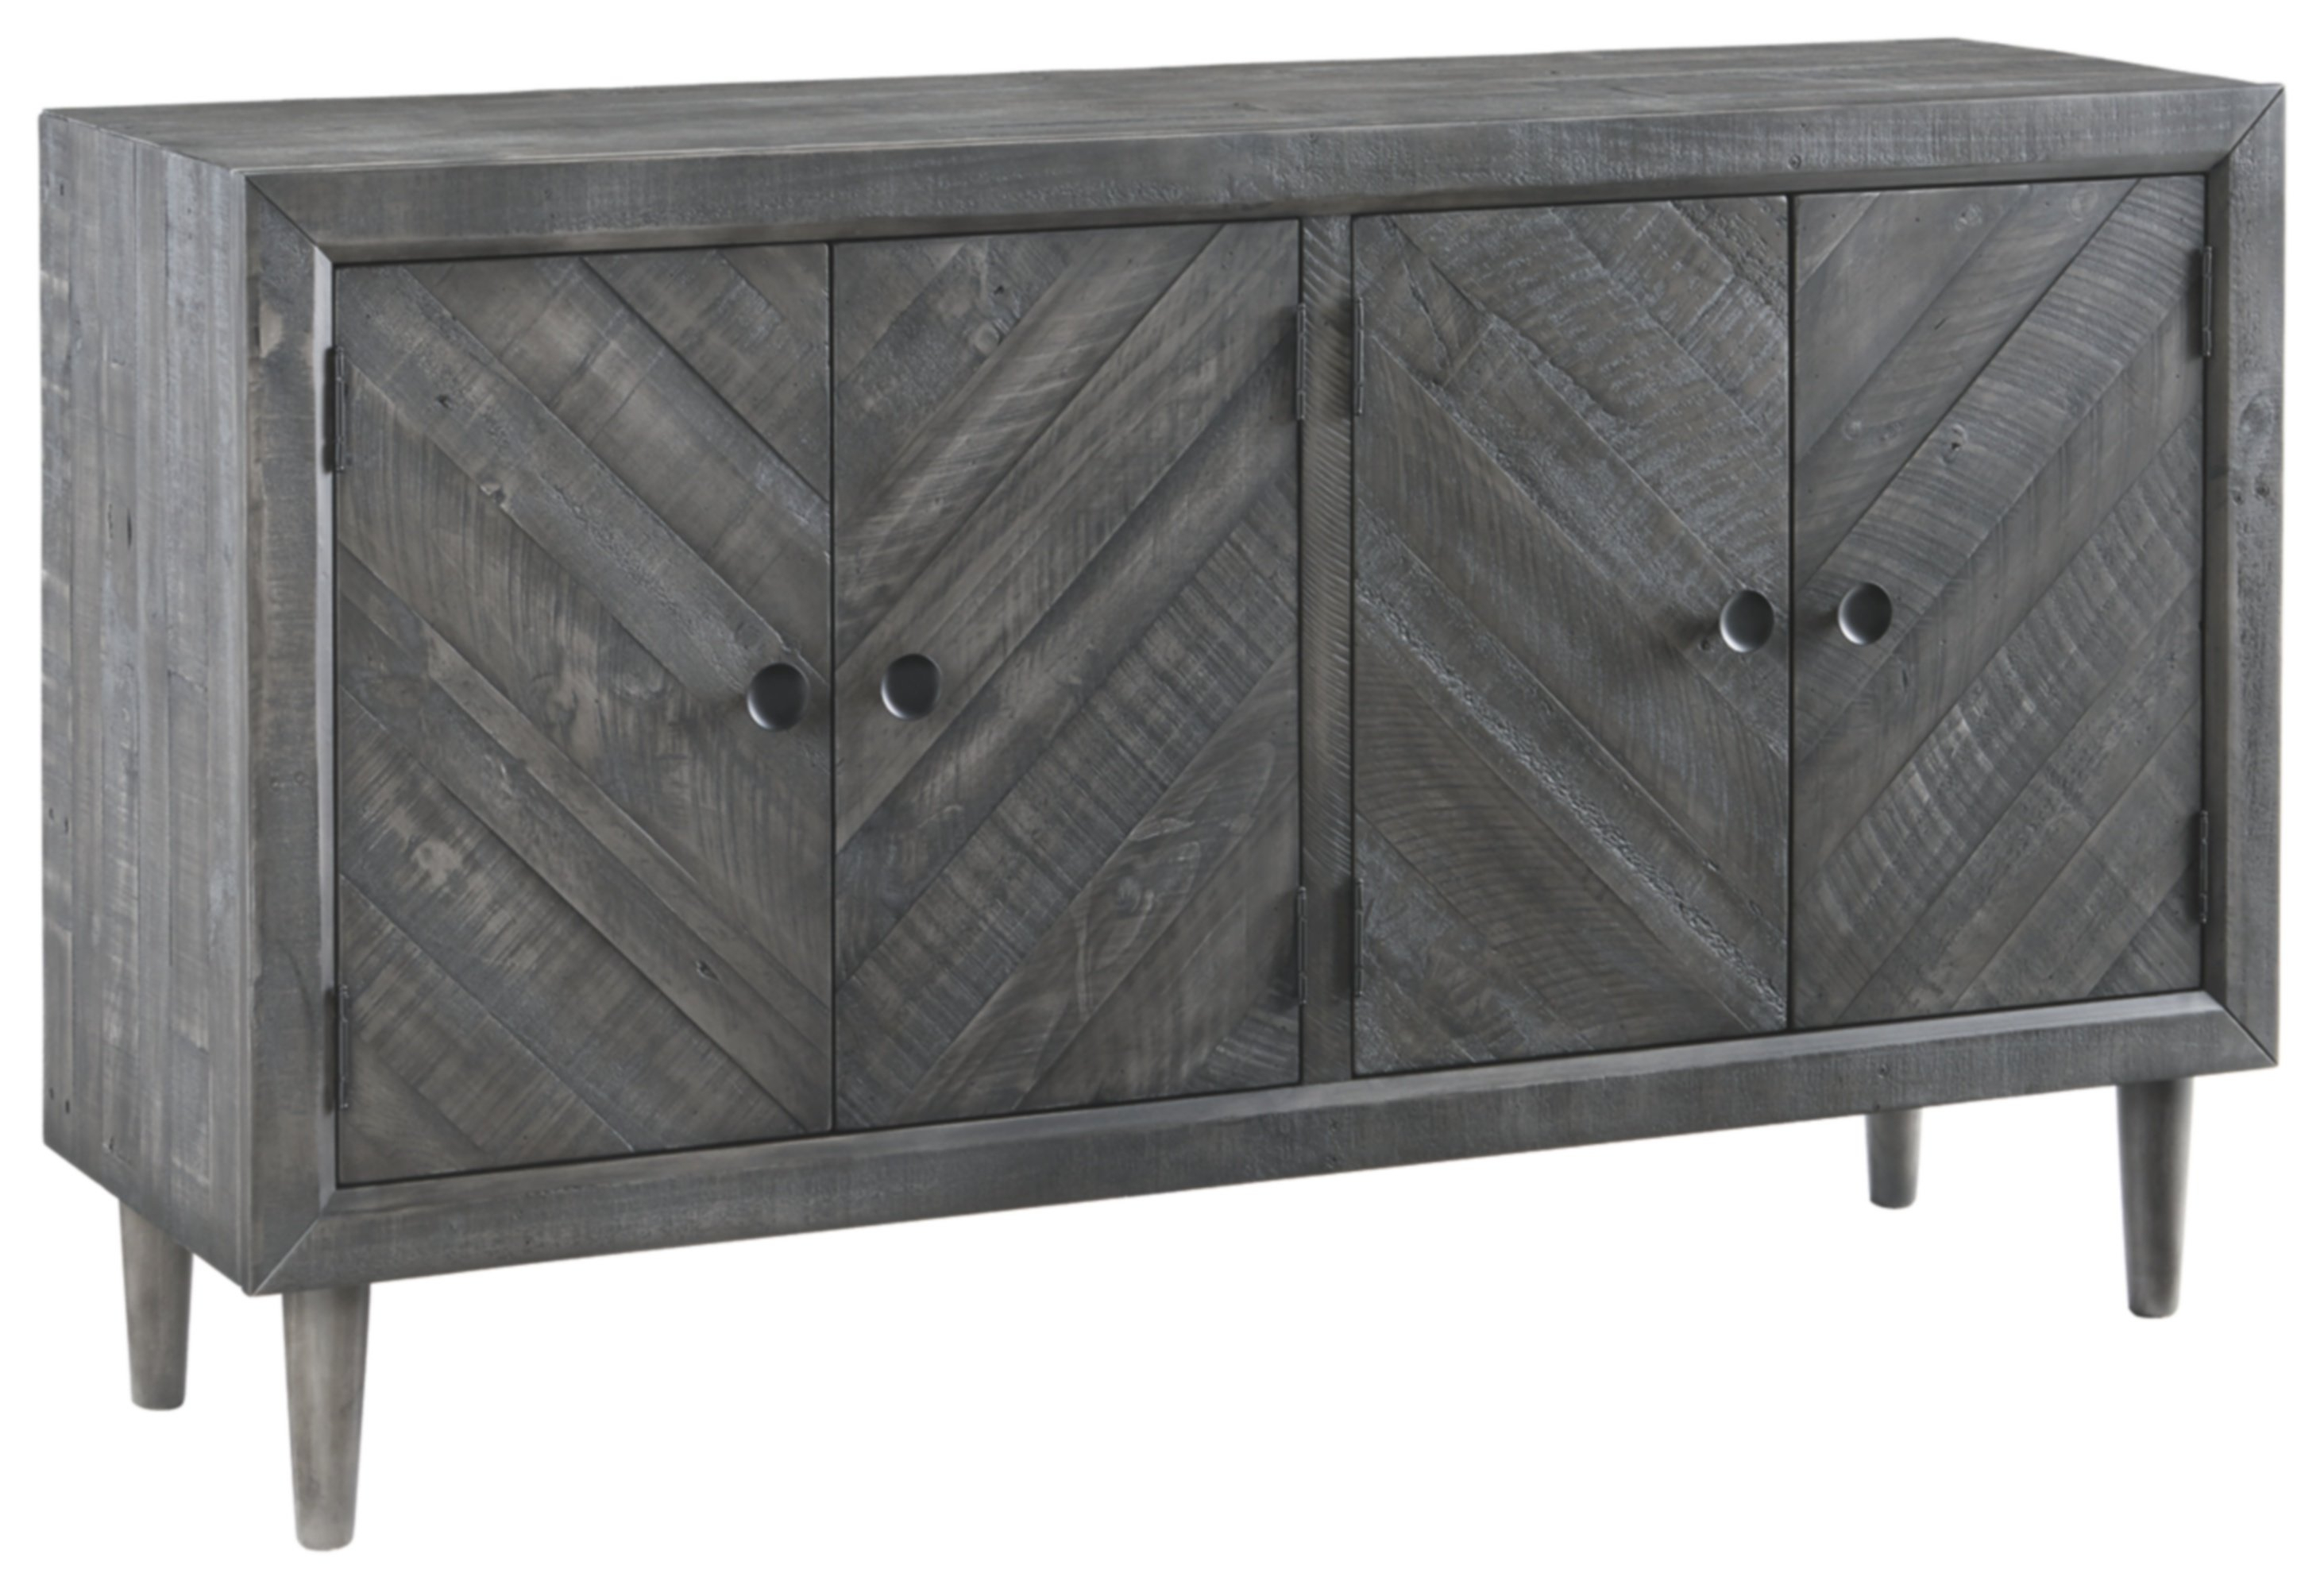 Banach Sideboard throughout Mauzy Sideboards (Image 3 of 30)